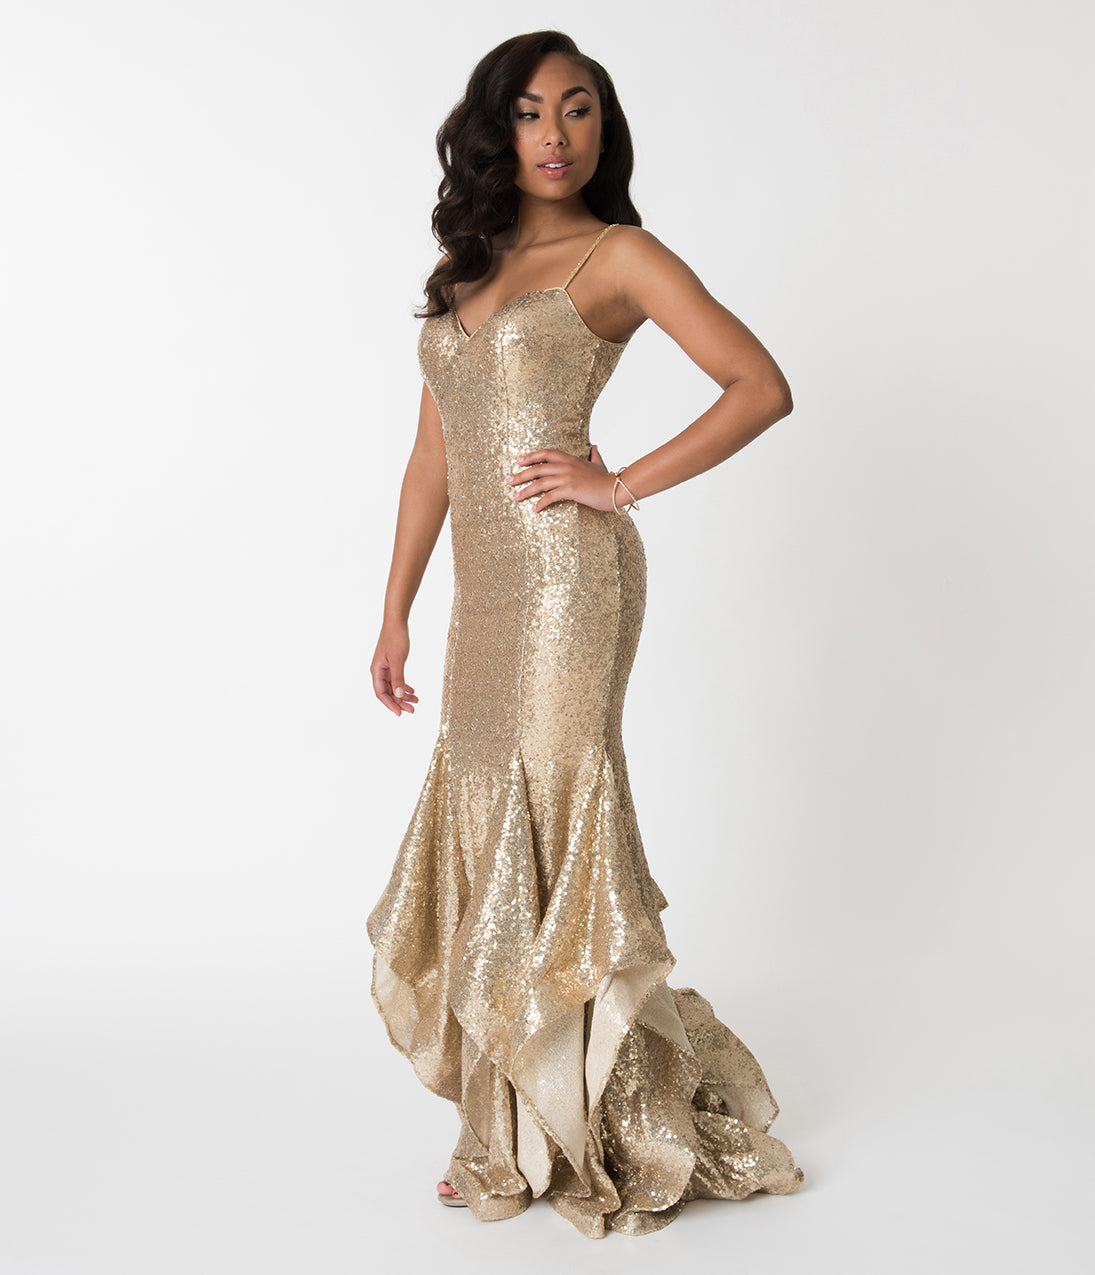 1950s Prom Dresses & Party Dresses Gold Sequin Embellished Spaghetti Strap Ruffled Mermaid Cut Gown $358.00 AT vintagedancer.com